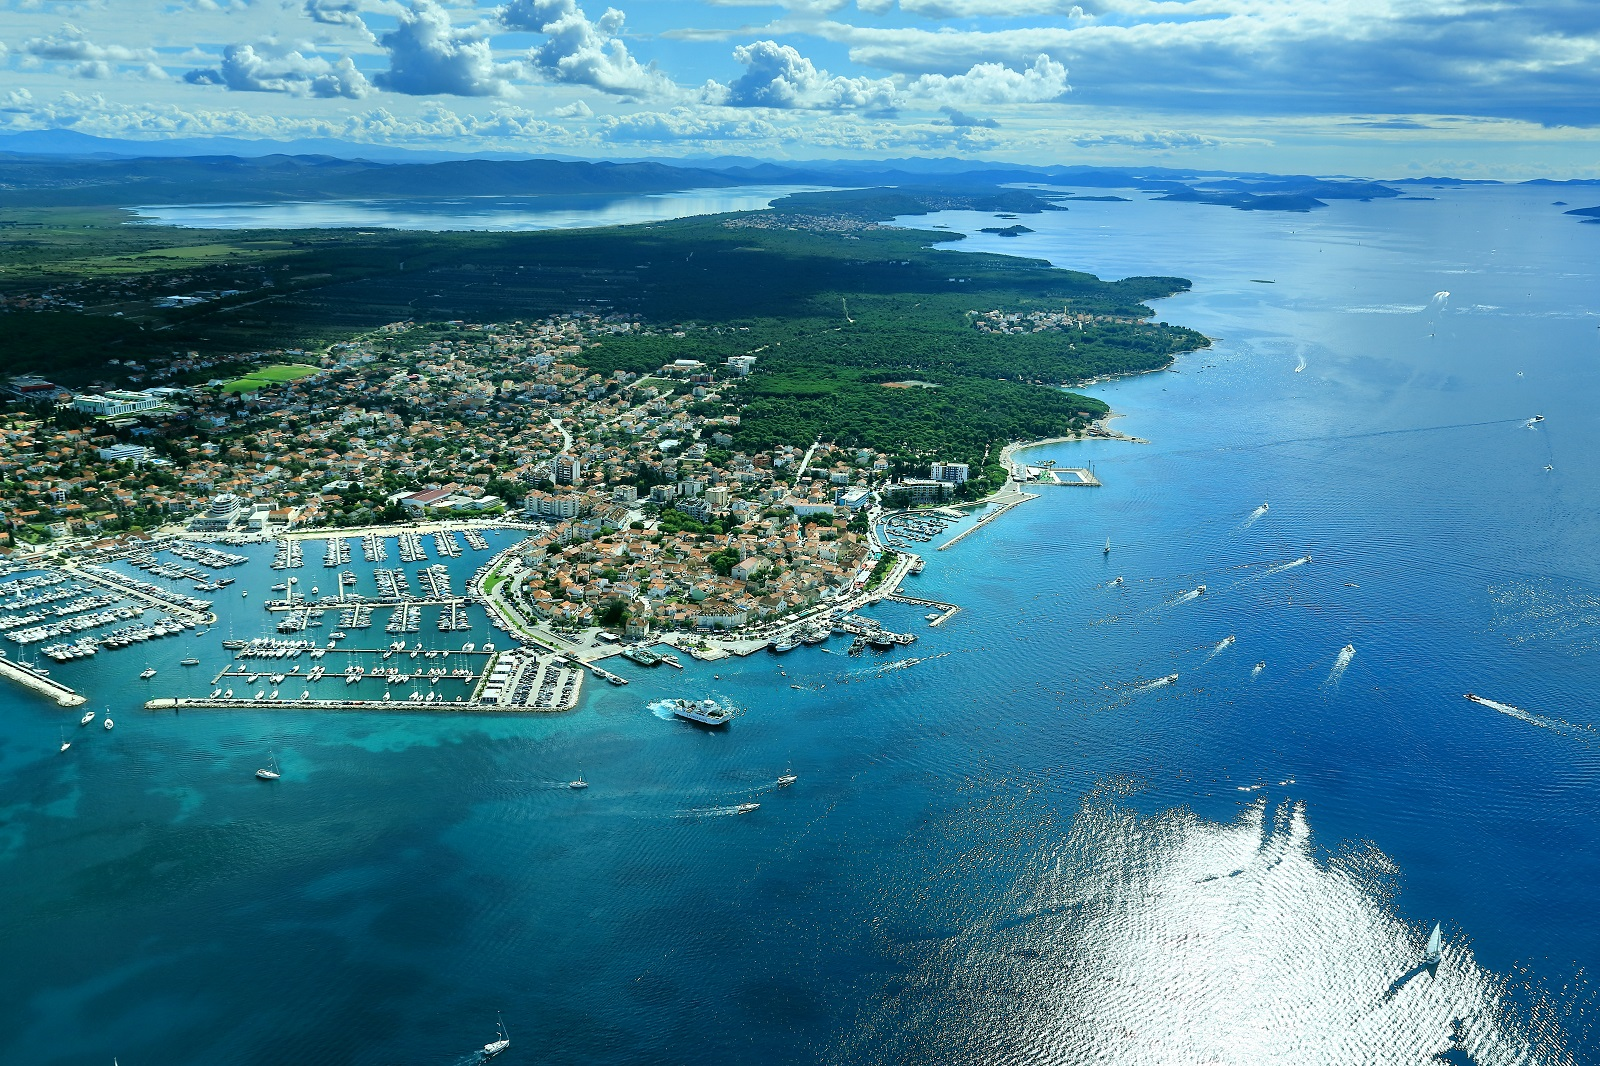 White Town on the Sea, Croatia, Biograd na moru, Dalmatia